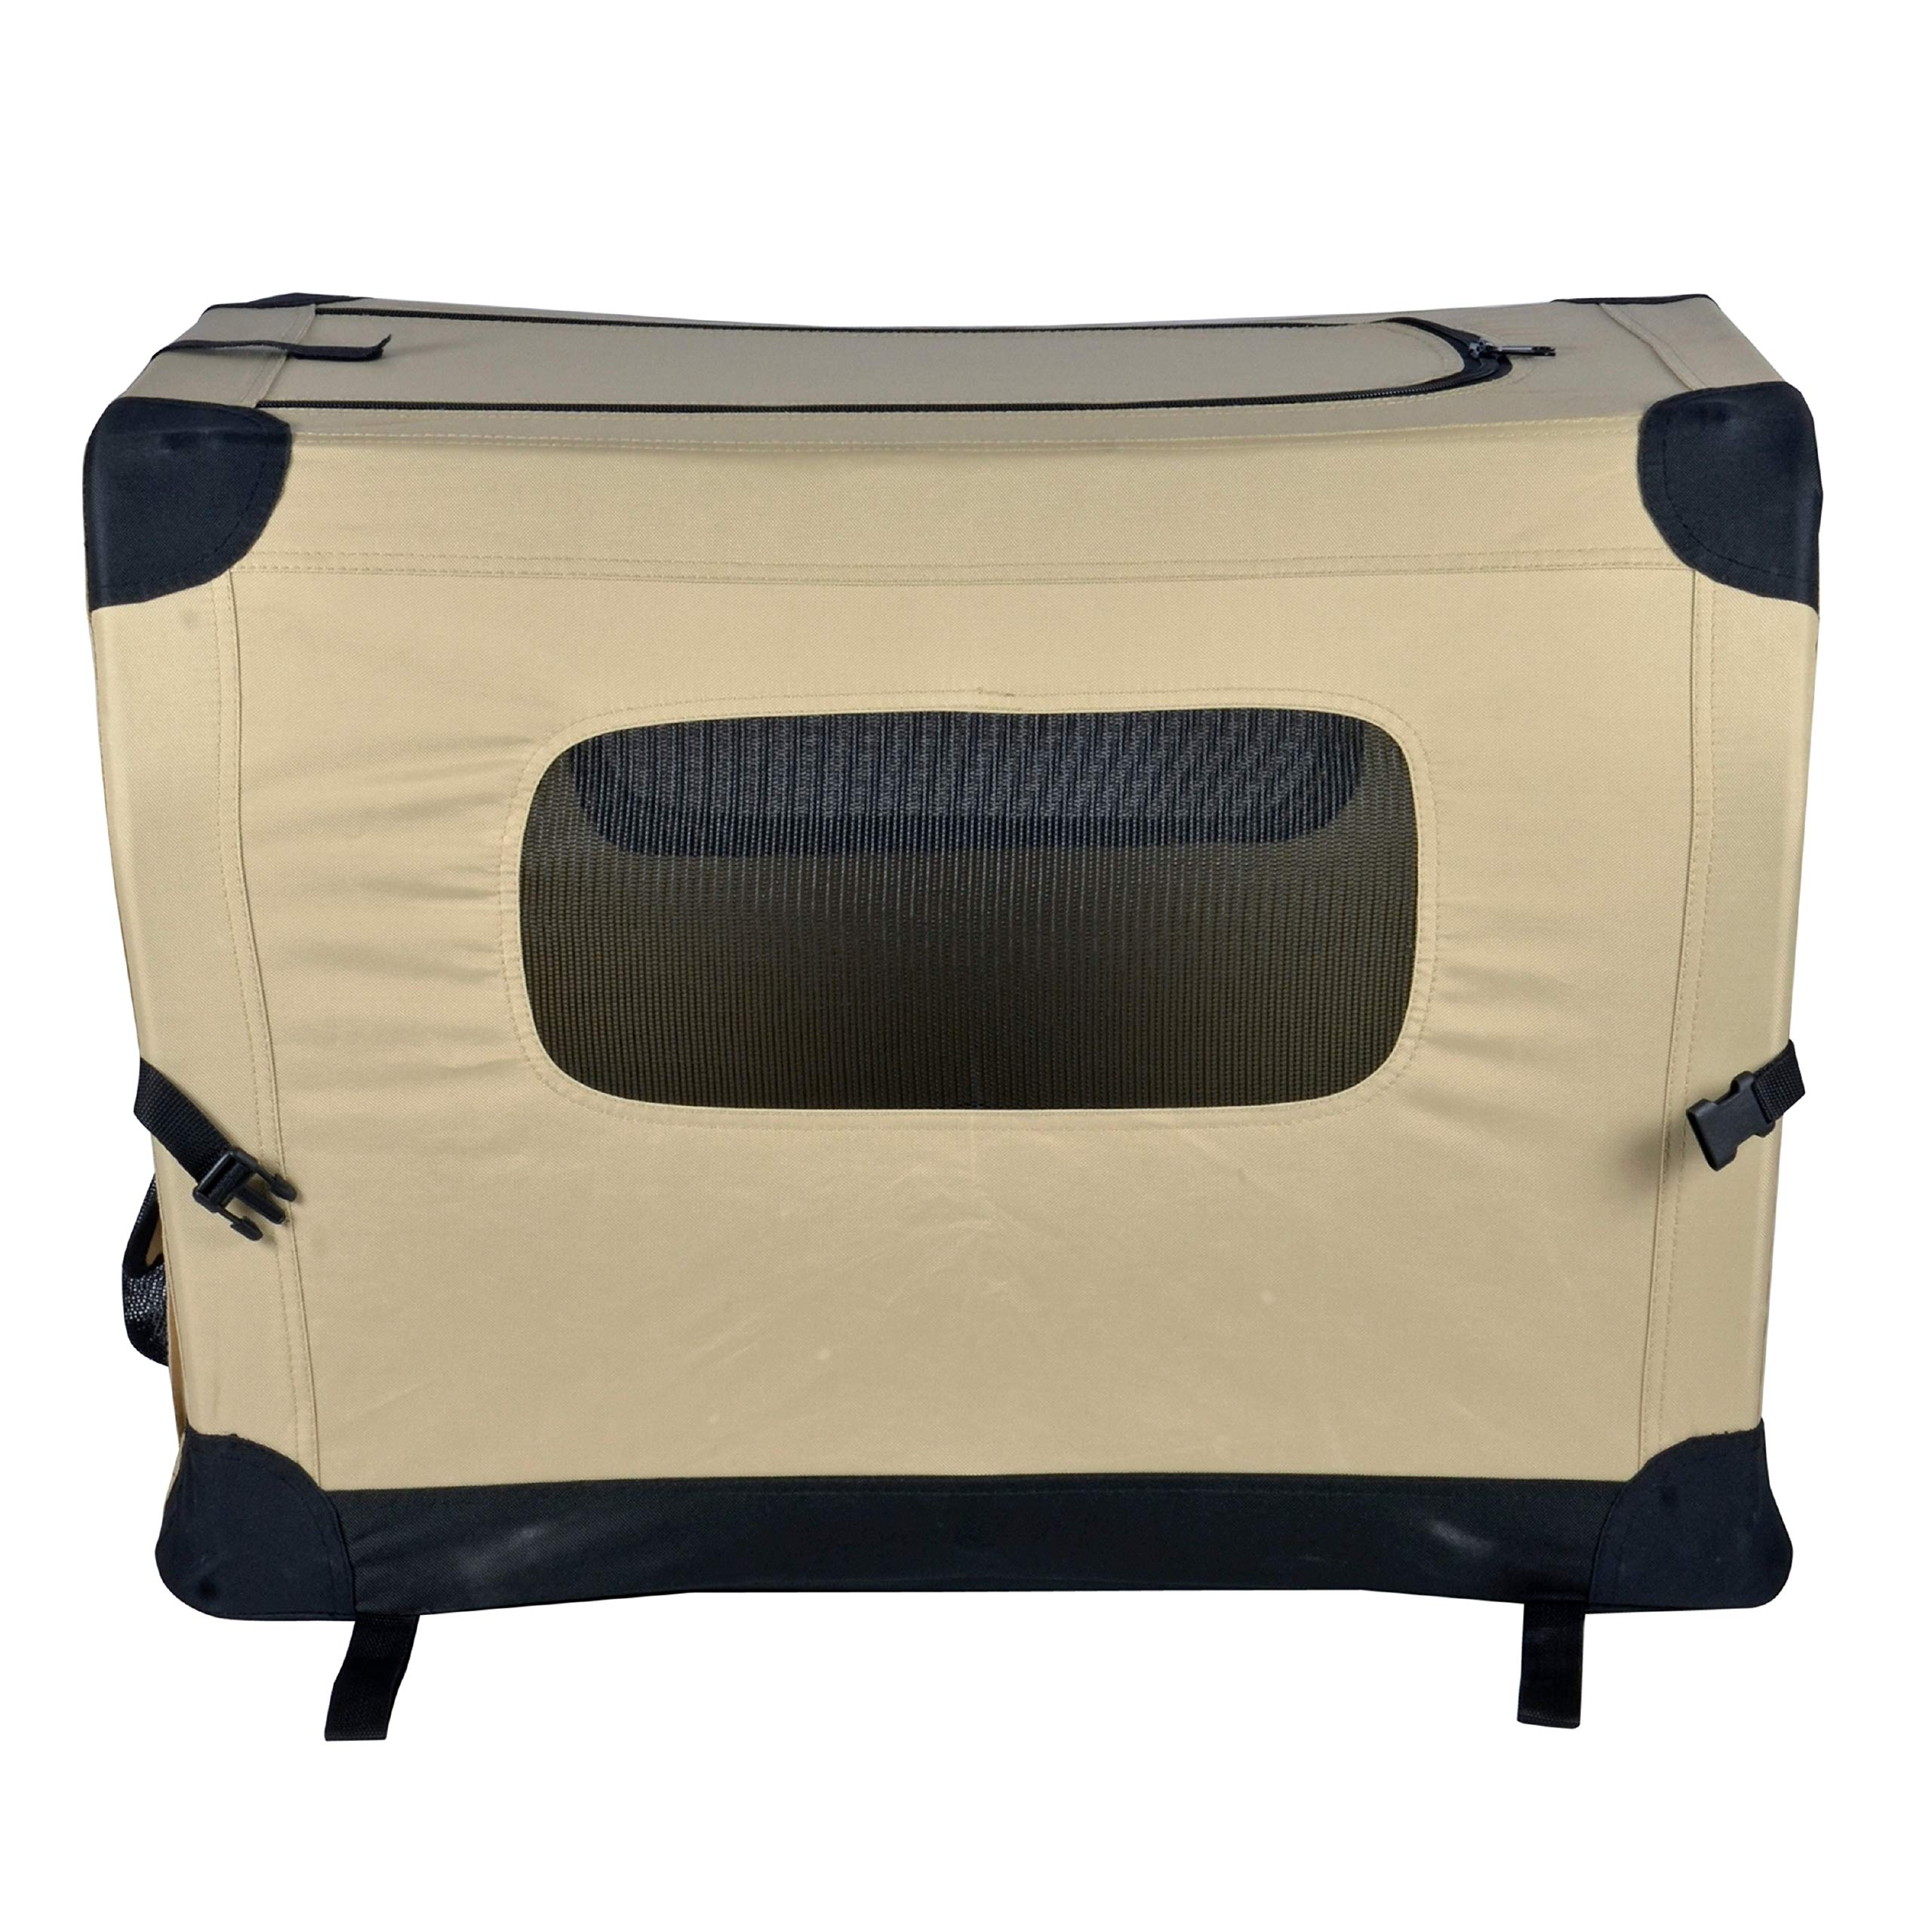 Petnation Port-A-Crate Indoor and Outdoor Home for Pets by PetNation (Image #3)